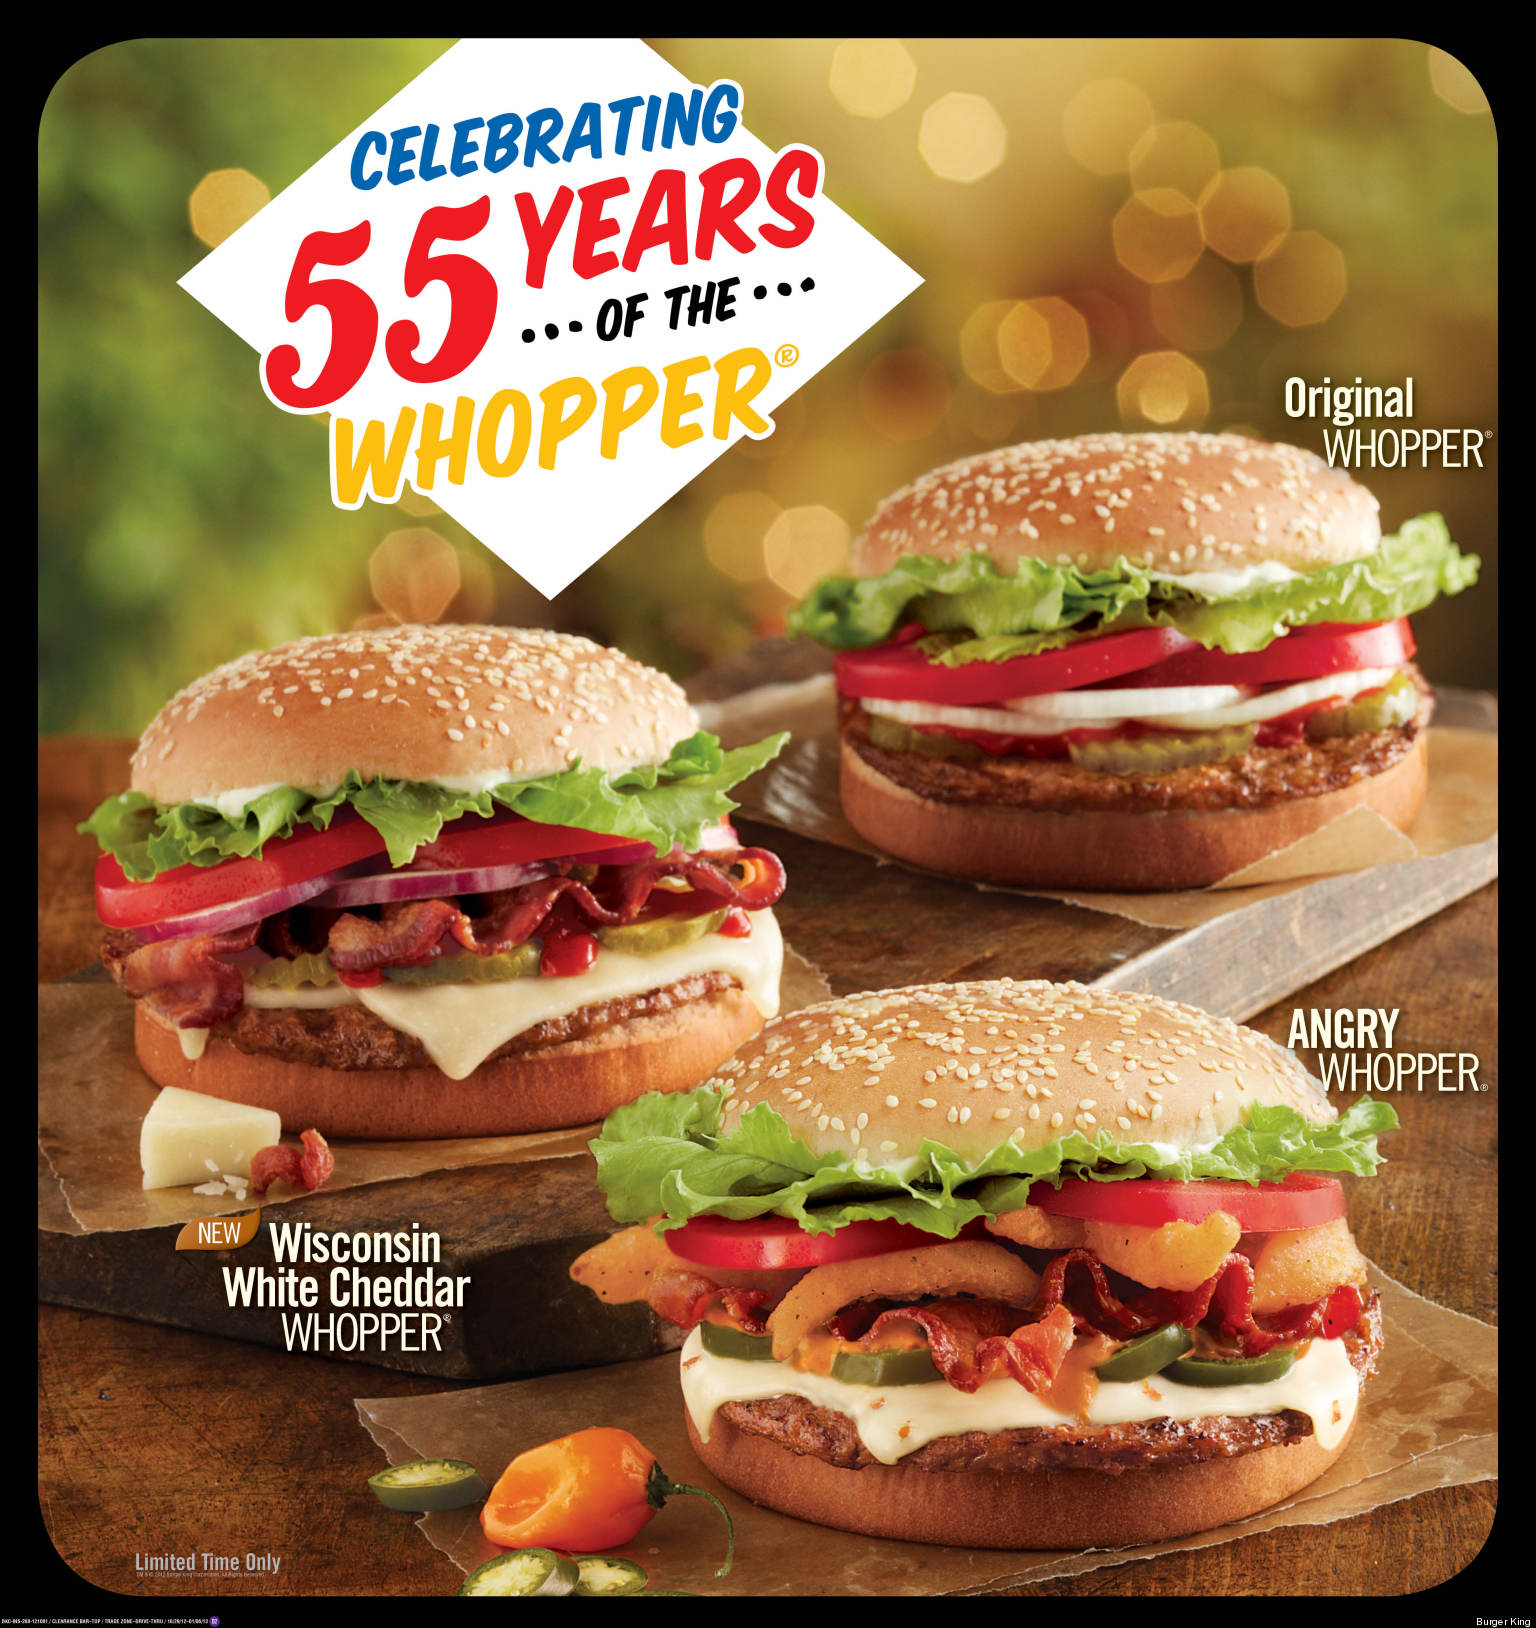 Burger King $0.55 Whopper, Quiznos Free Cookie And More ...